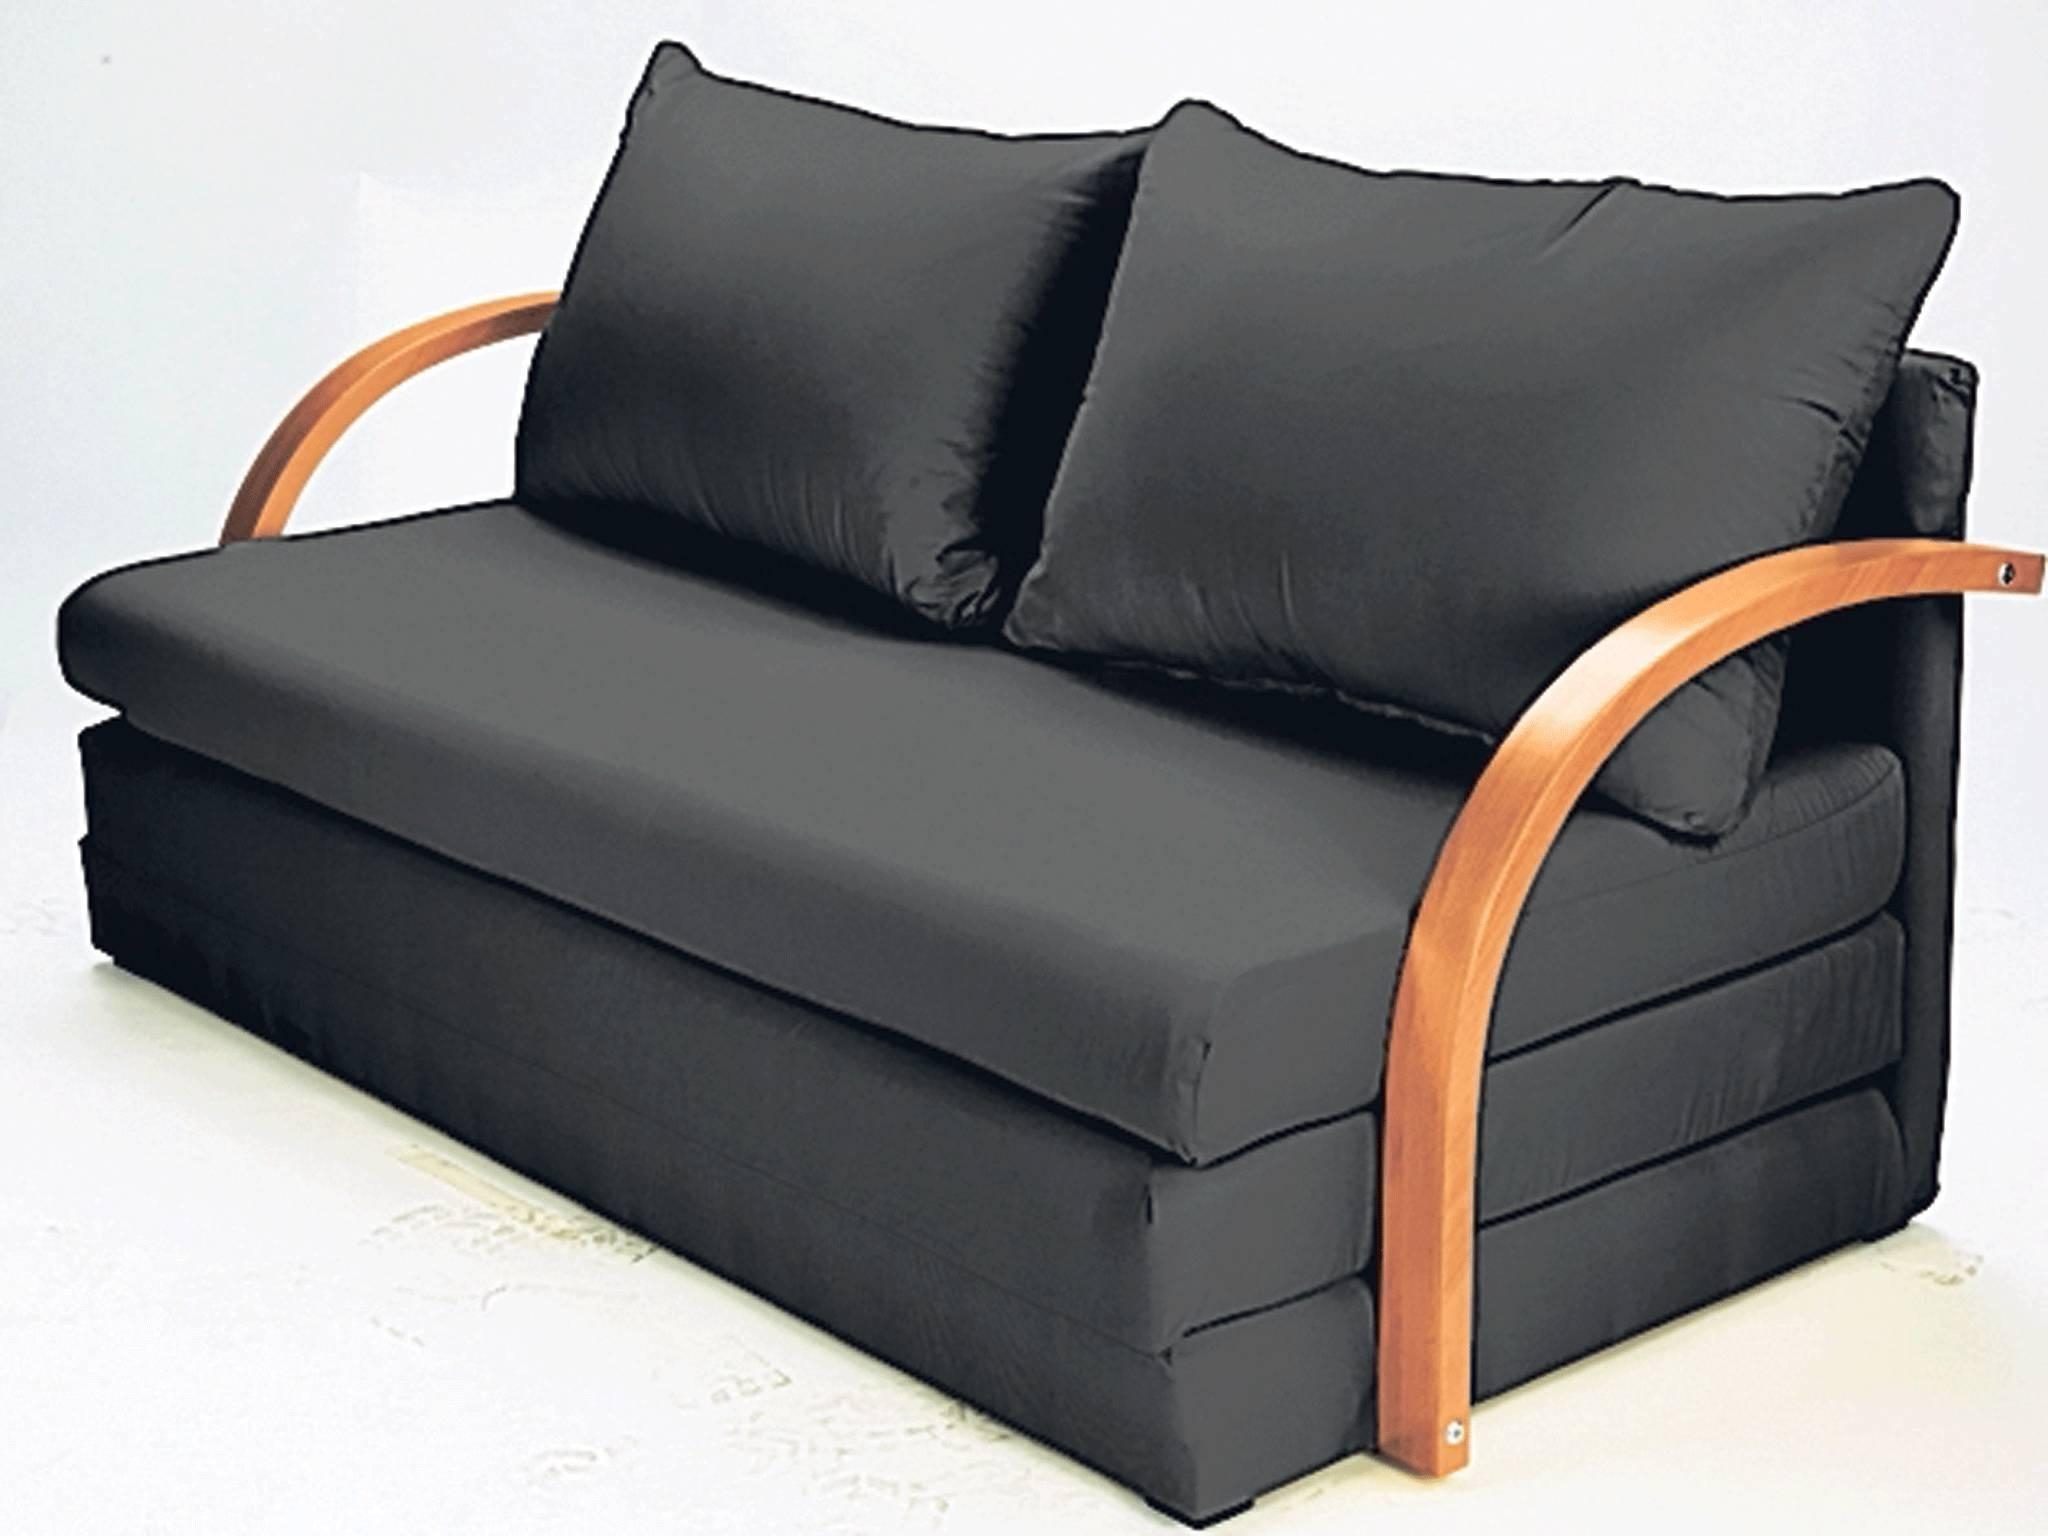 Modern Sofas That Turn Into Beds | Homesfeed Regarding Giant Sofa Beds (View 13 of 20)